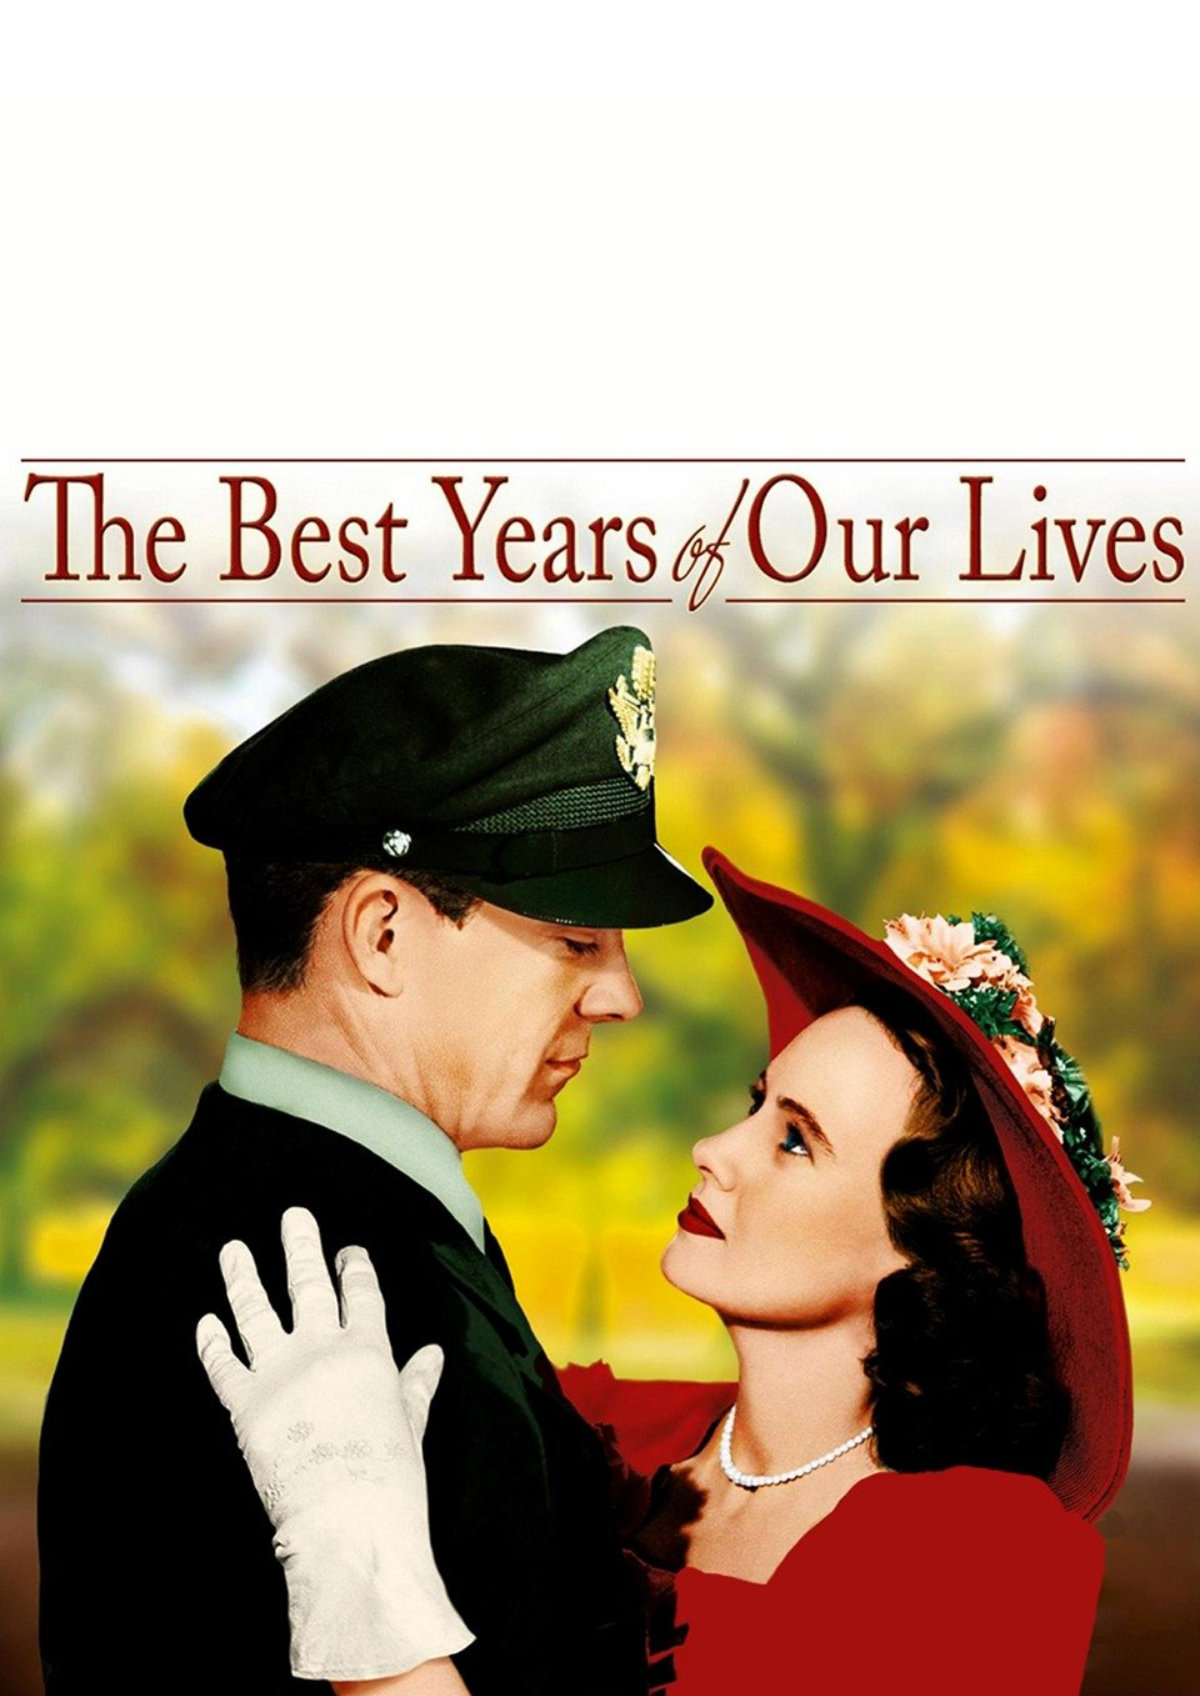 'The Best Years of Our Lives' movie poster